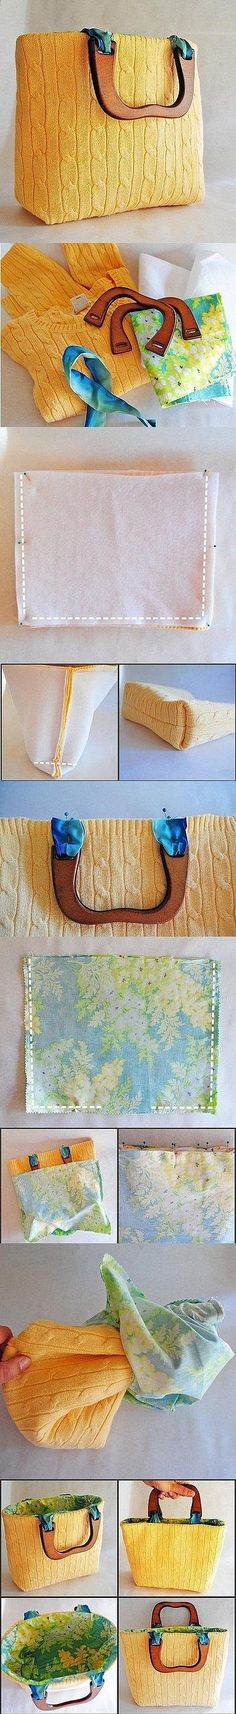 Need to get rid of a old sweater? Sweater purse!